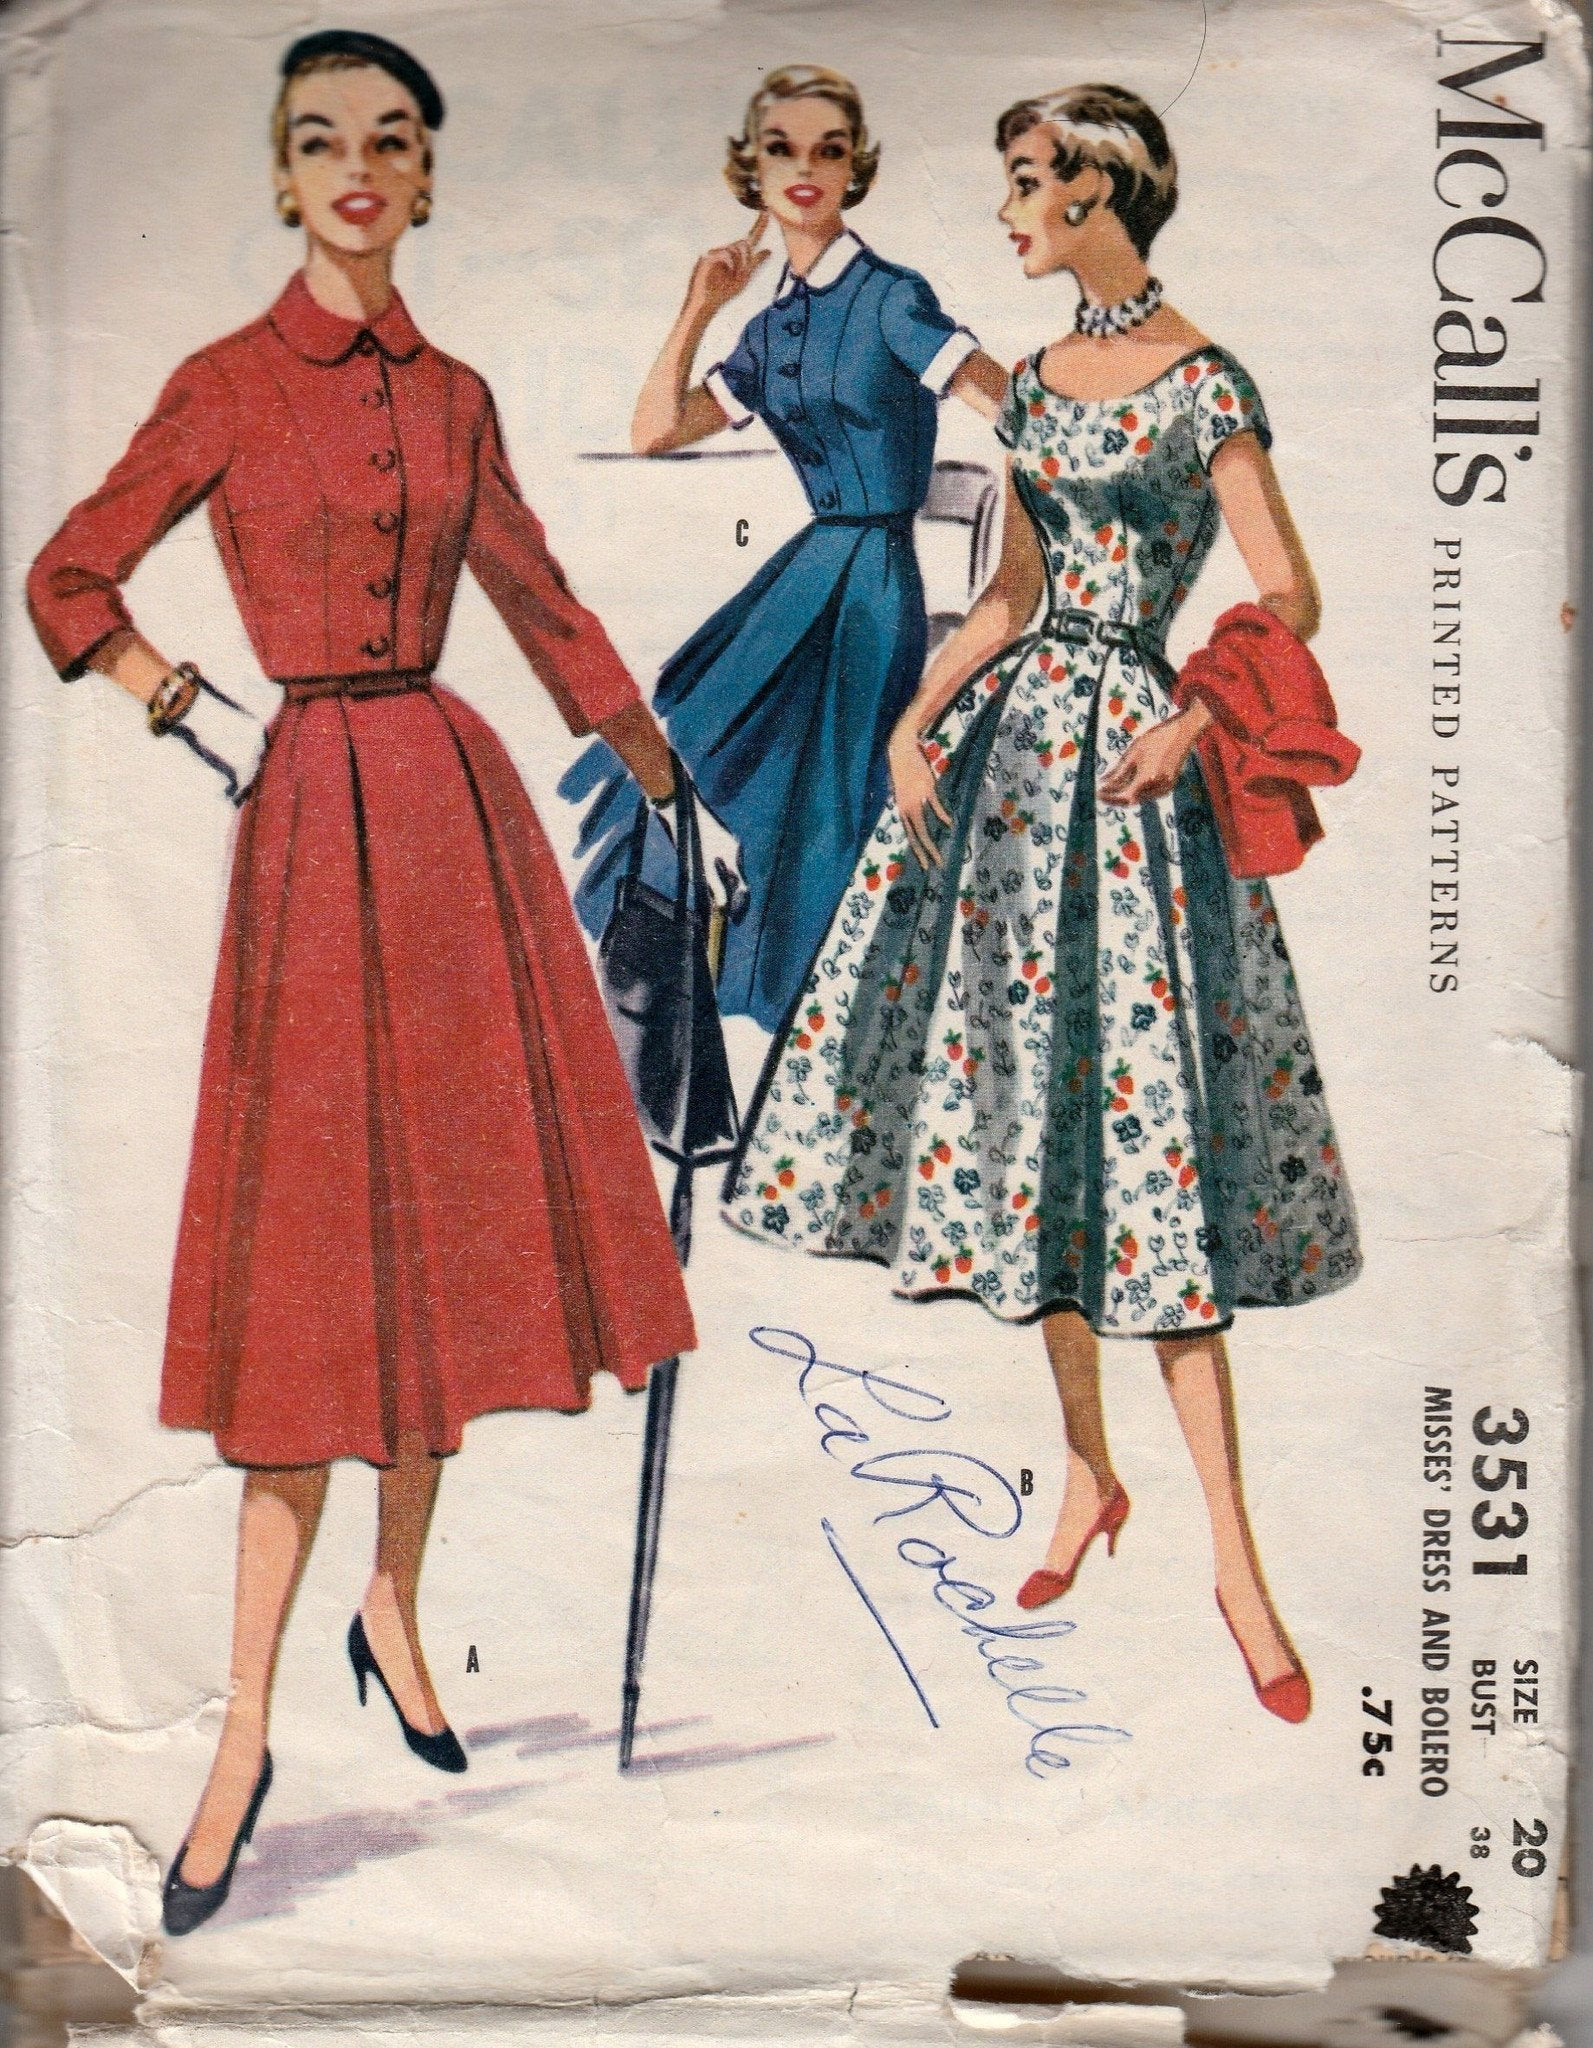 McCall's 3531 Ladies Shirtwaist Dress Bolero Jacket Vintage 1950's Sewing Pattern - VintageStitching - Vintage Sewing Patterns